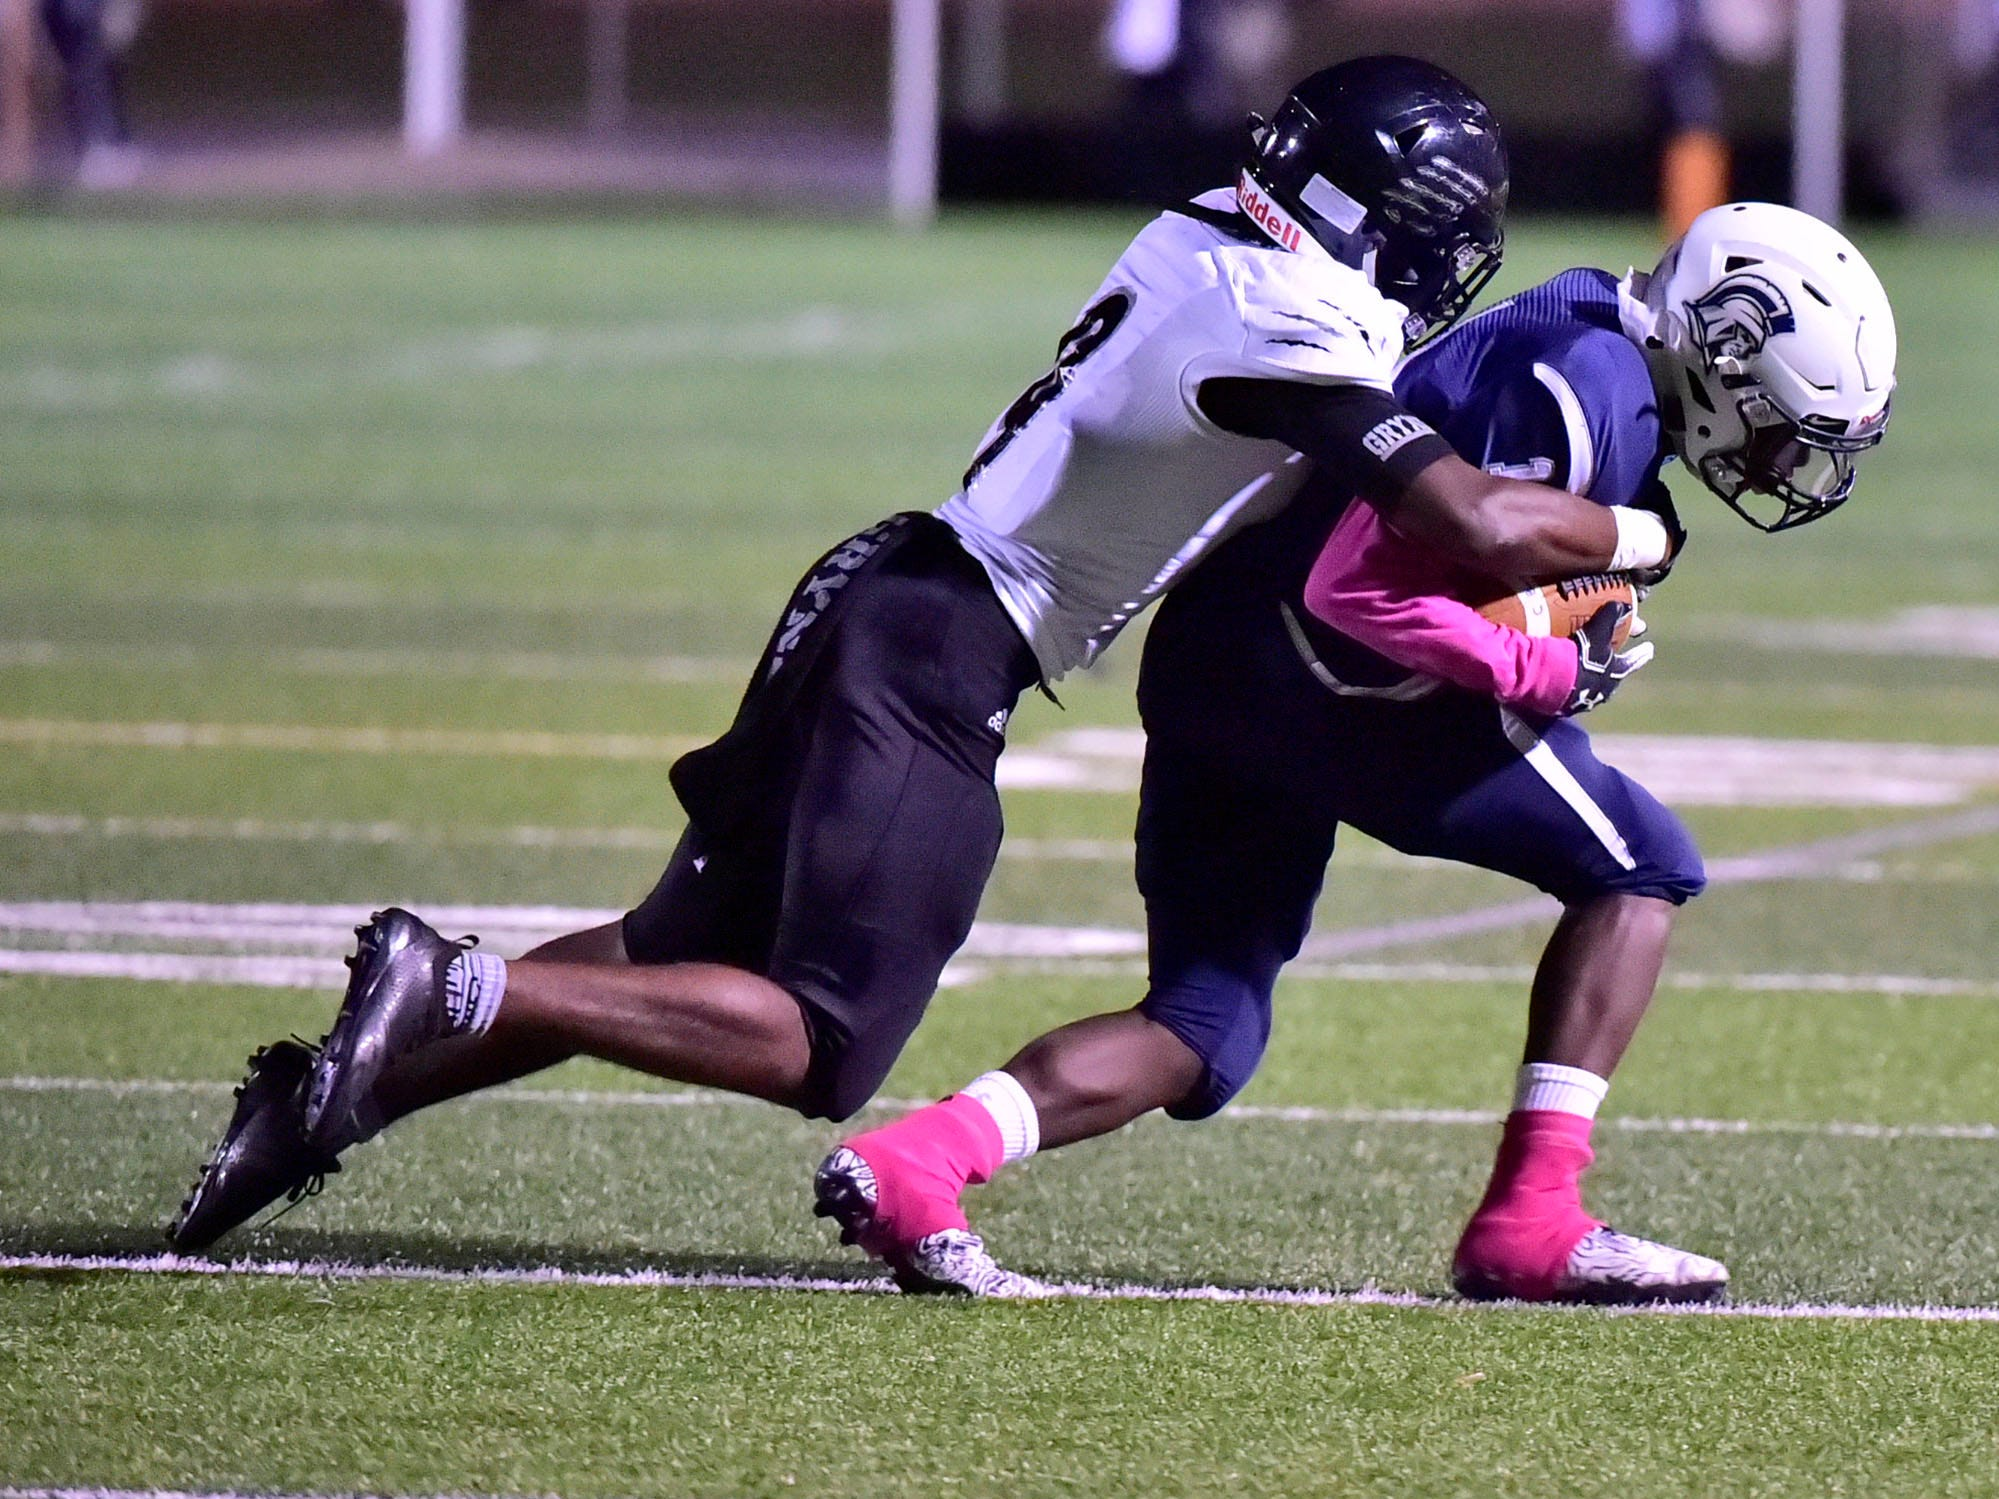 Chambersburg's Kevin Lee, right, runs away from Harrisburg's Donte Kent after catching a pass. Chambersburg dropped a 28-13 game against Harrisburg in PIAA football on Friday, Oct. 12, 2018.